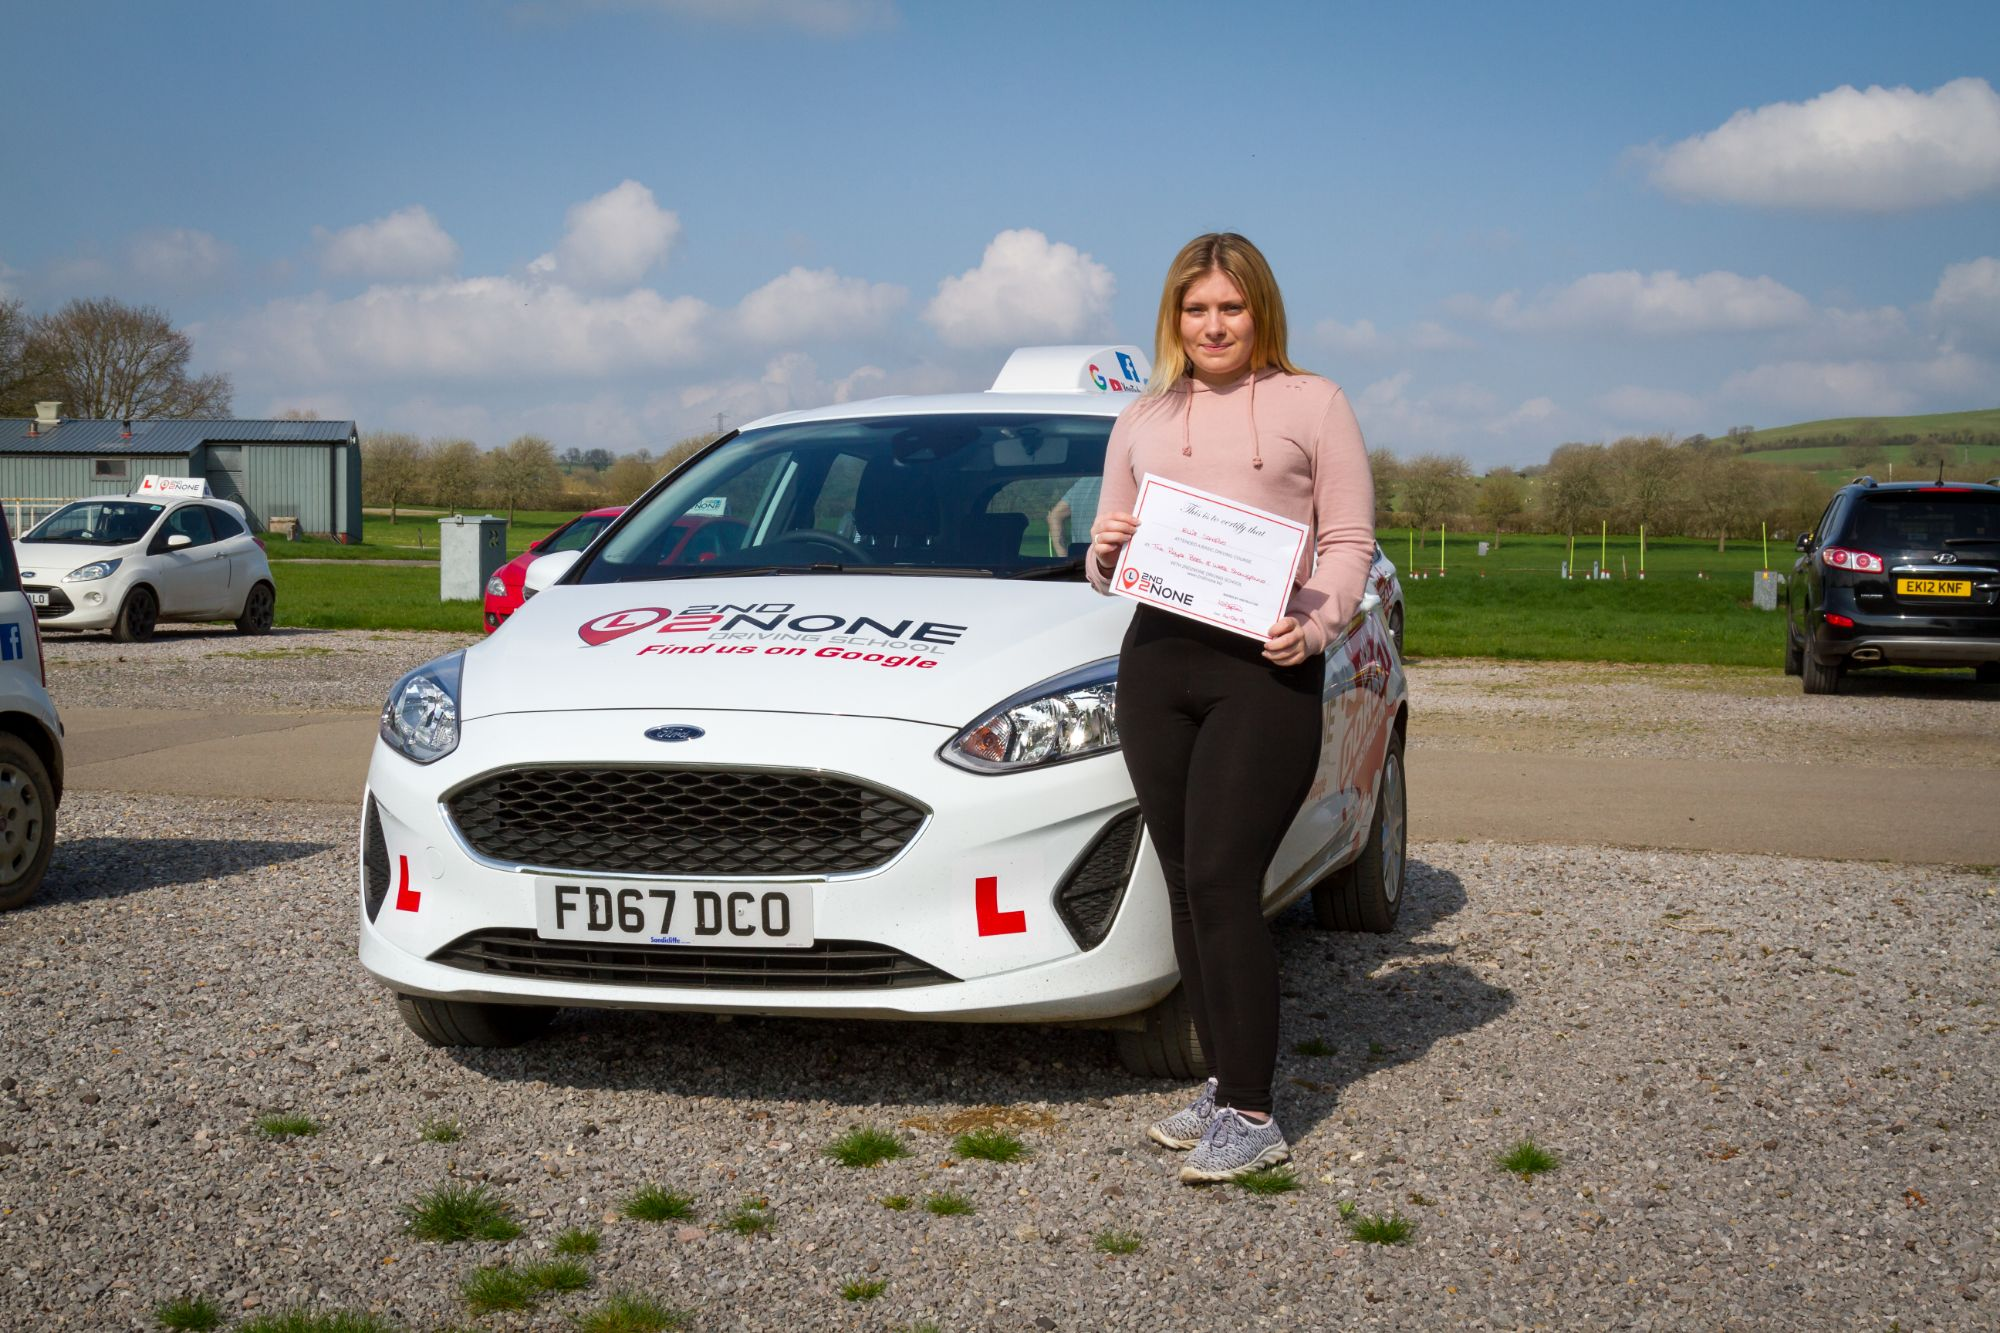 Under 17's Driving Lessons Fontmell Magna